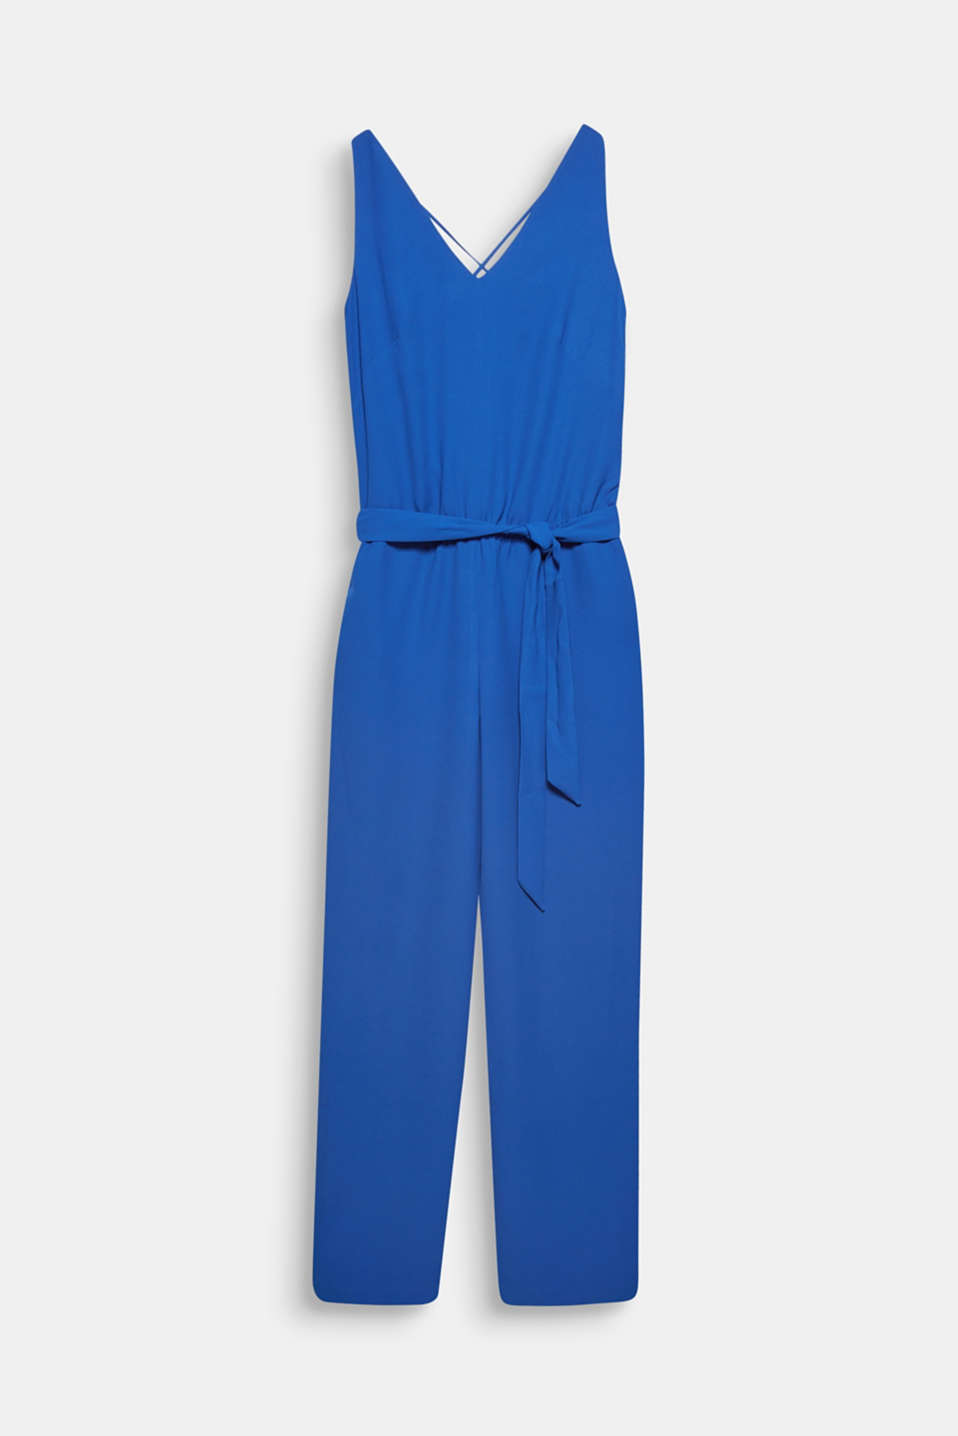 With its sophisticated rear view, tie belt and comfortable cut, this jumpsuit made of softly draped crêpe is an airy, lightweight summer hit!